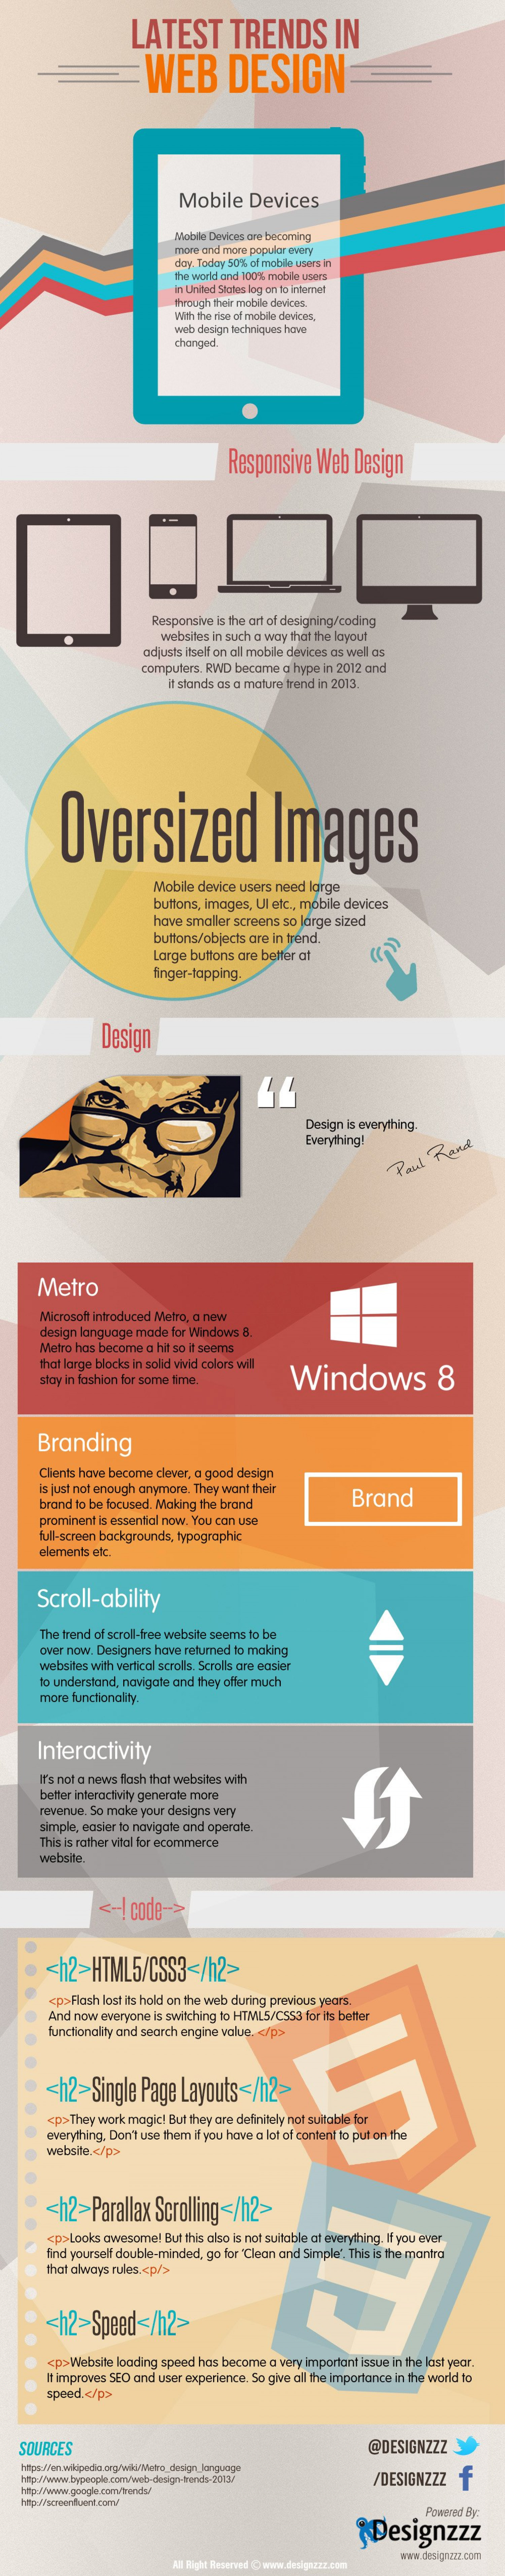 Latest Trends in Web Design Infographic